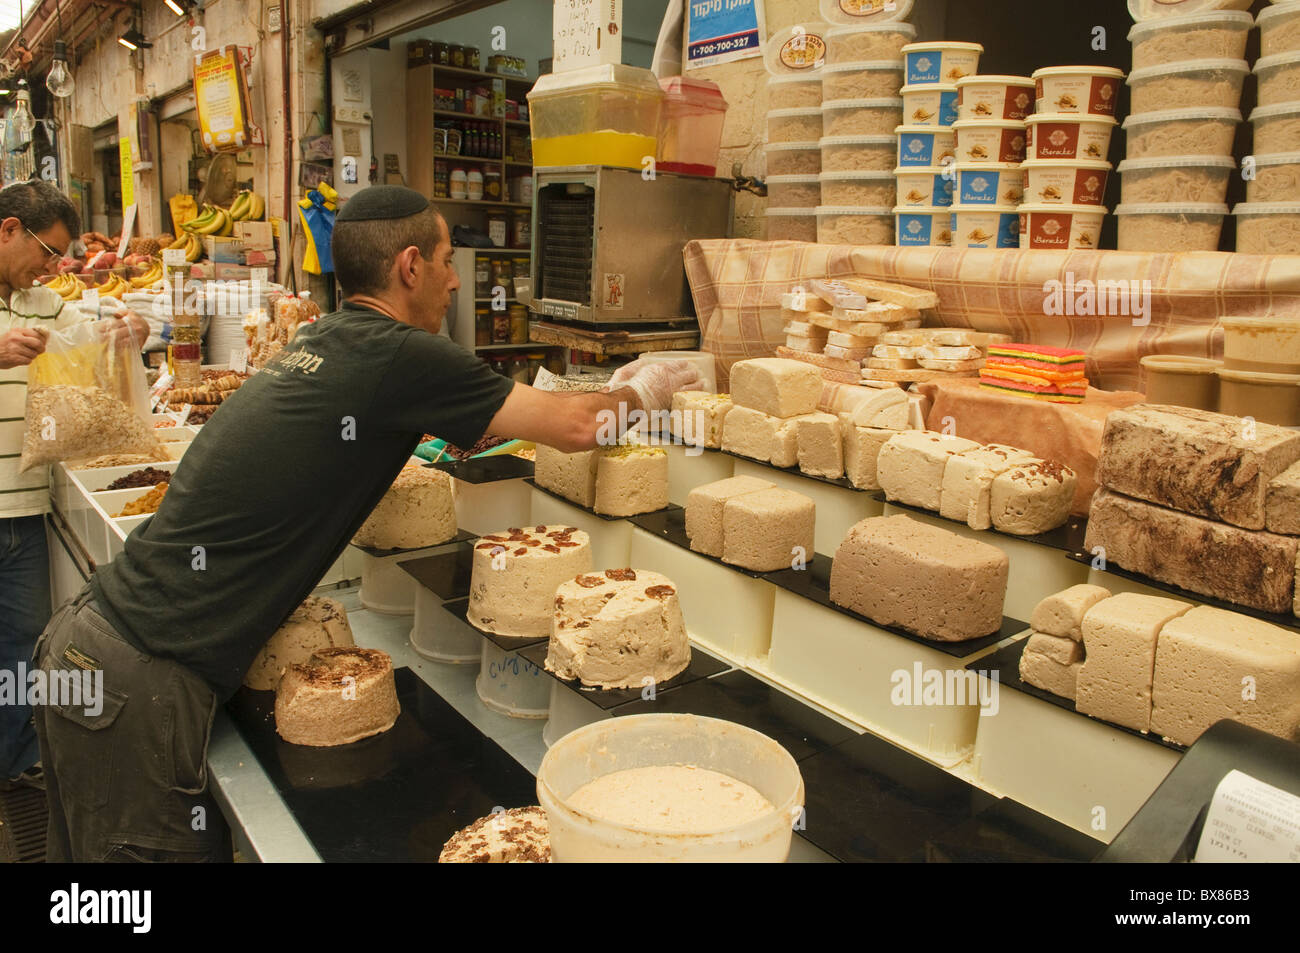 shop specializing in halva in the Mehane Yehuda market in Jerusalem - Stock Image